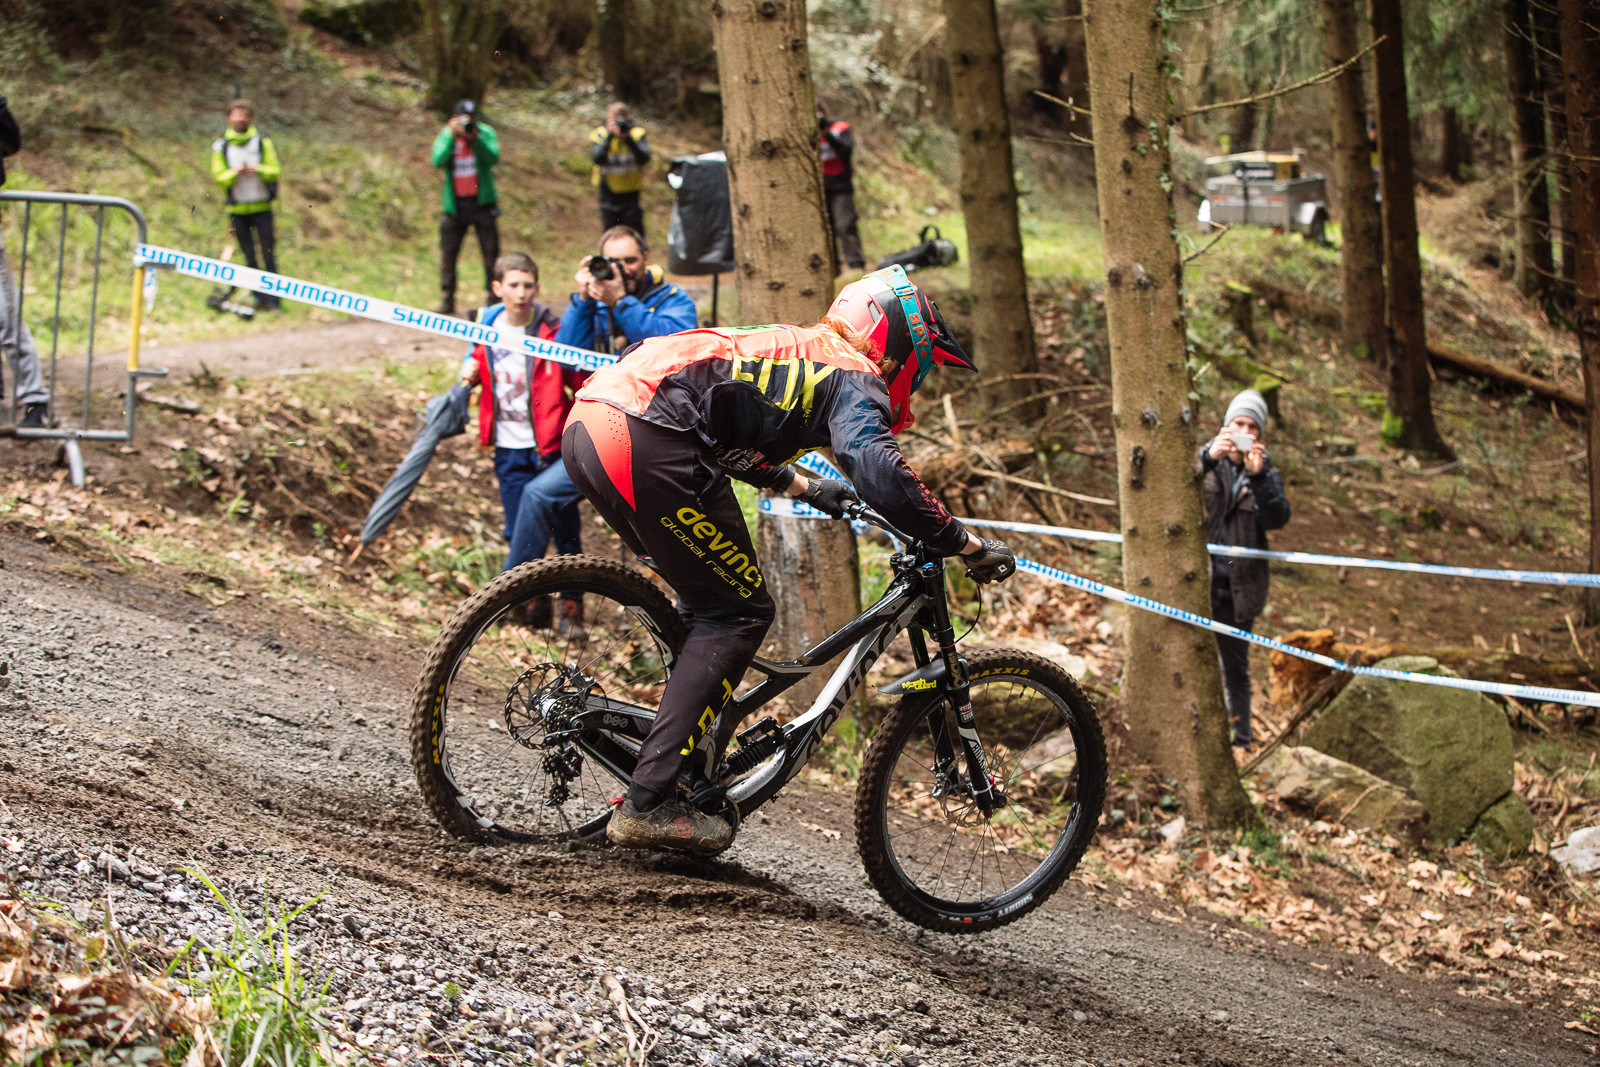 Devinci Wilson Bottom Out at Lourdes World Cup - G-Out Project - Lourdes World Cup DH - Mountain Biking Pictures - Vital MTB